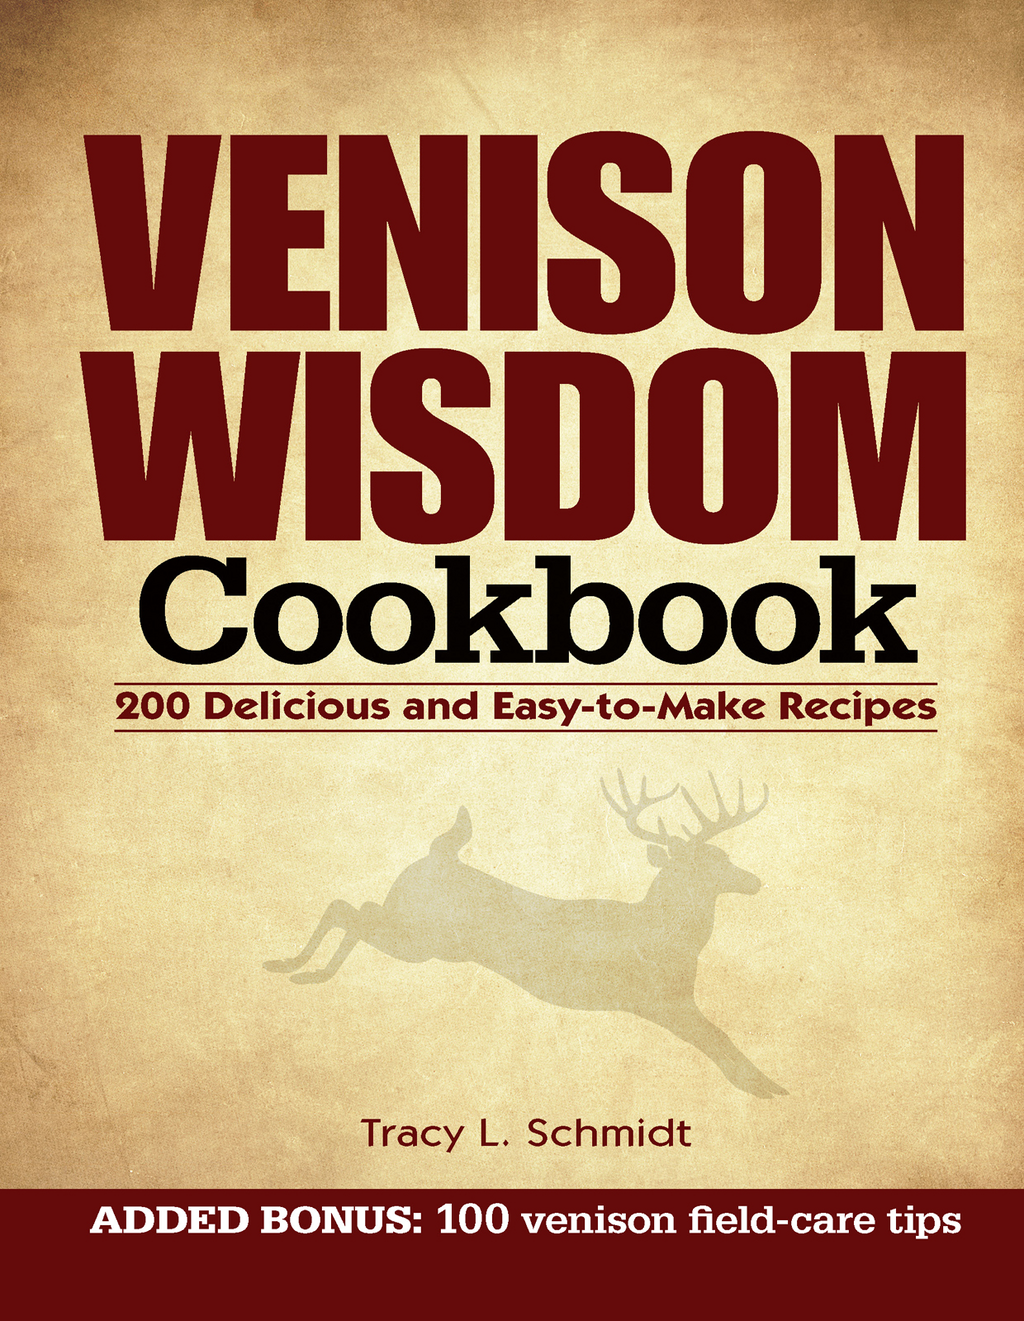 Venison Wisdom Cookbook 200 Delicious and Easy-to-Make Recipes